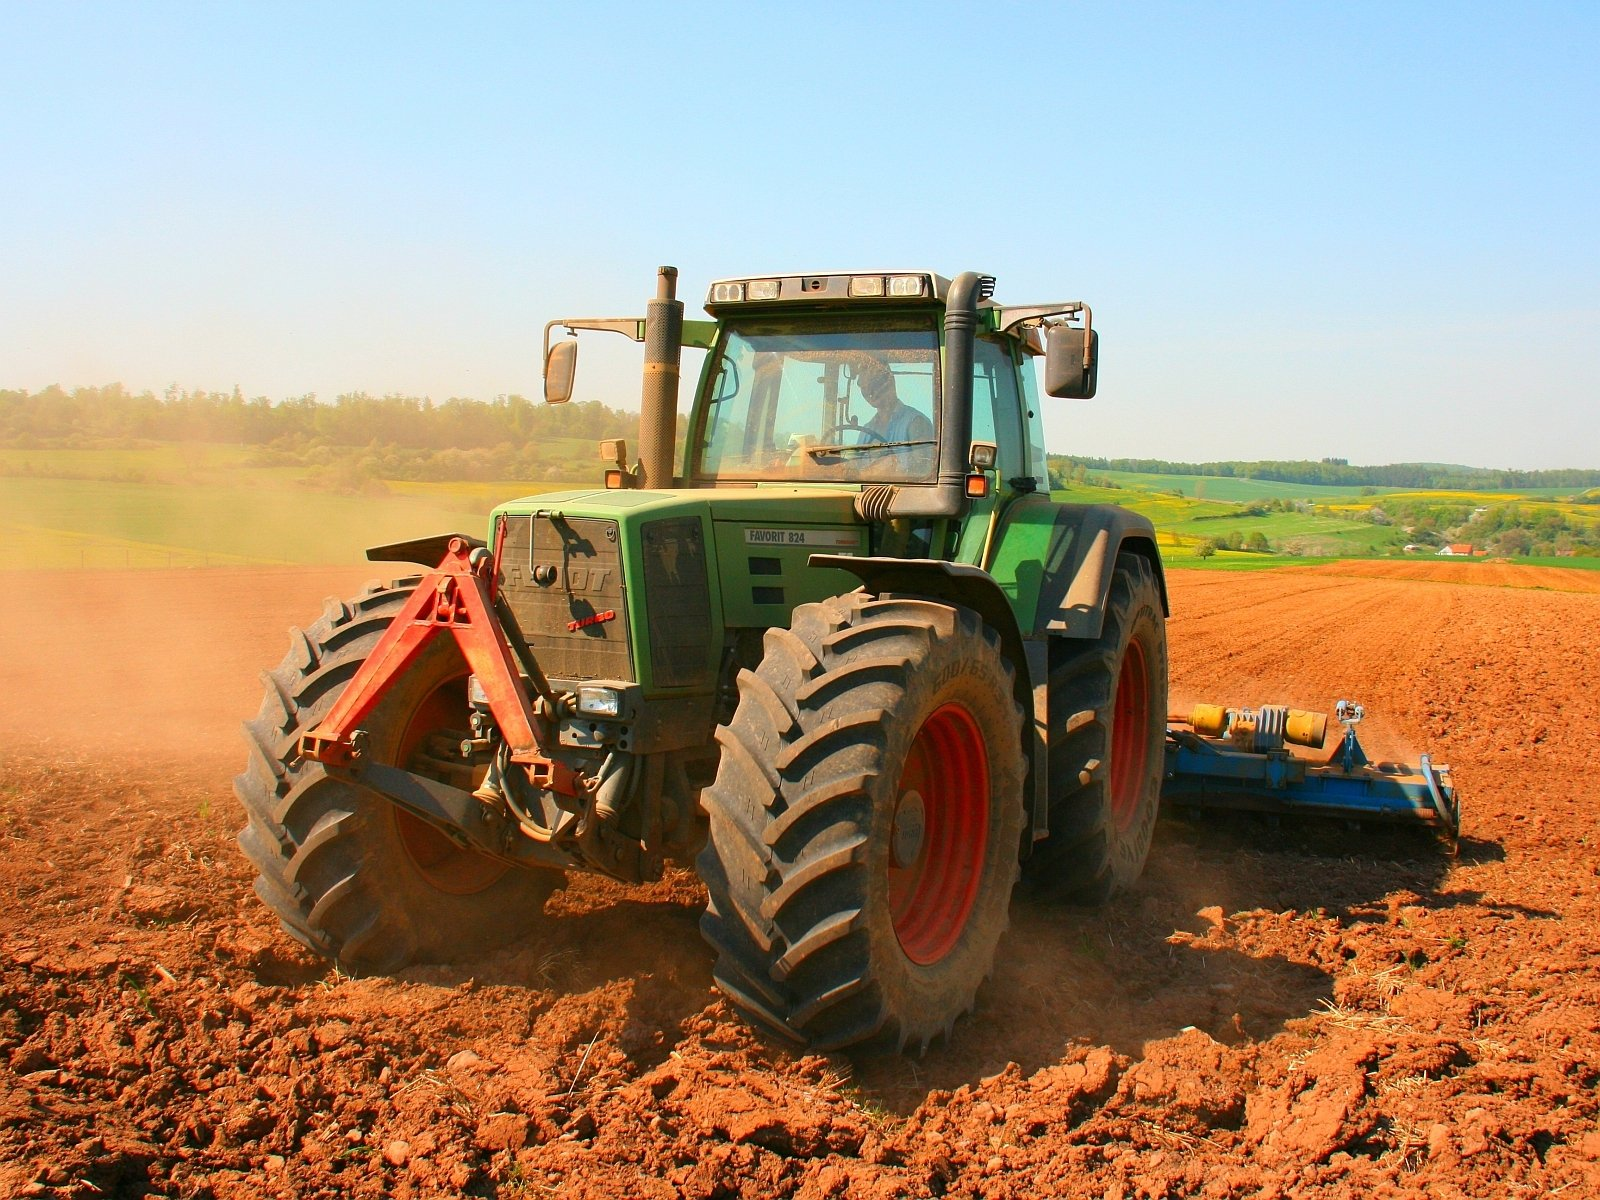 Best 48 Fendt Wallpaper on HipWallpaper Fendt Wallpaper Fendt 1600x1200